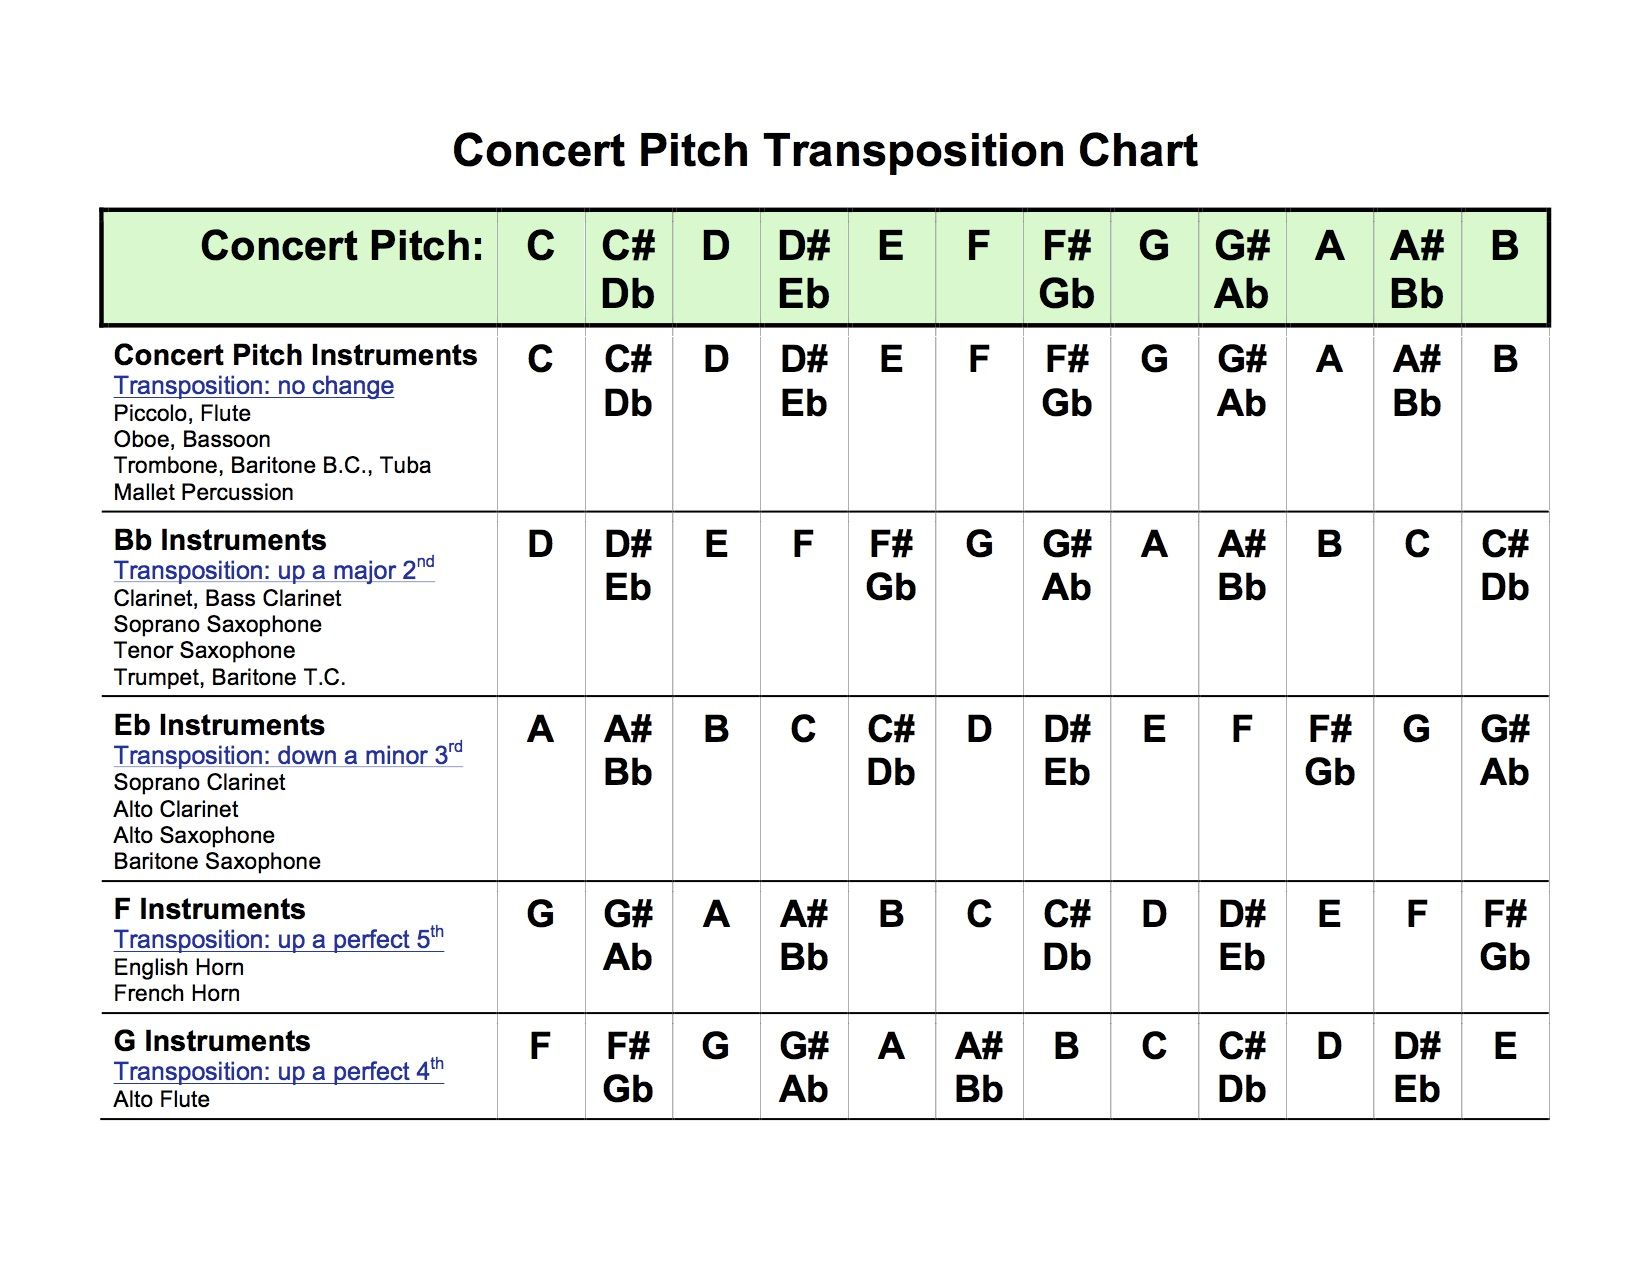 Concert Pitch Transposition Chart Why Can T All The Instruments Just Play Concert Pitch